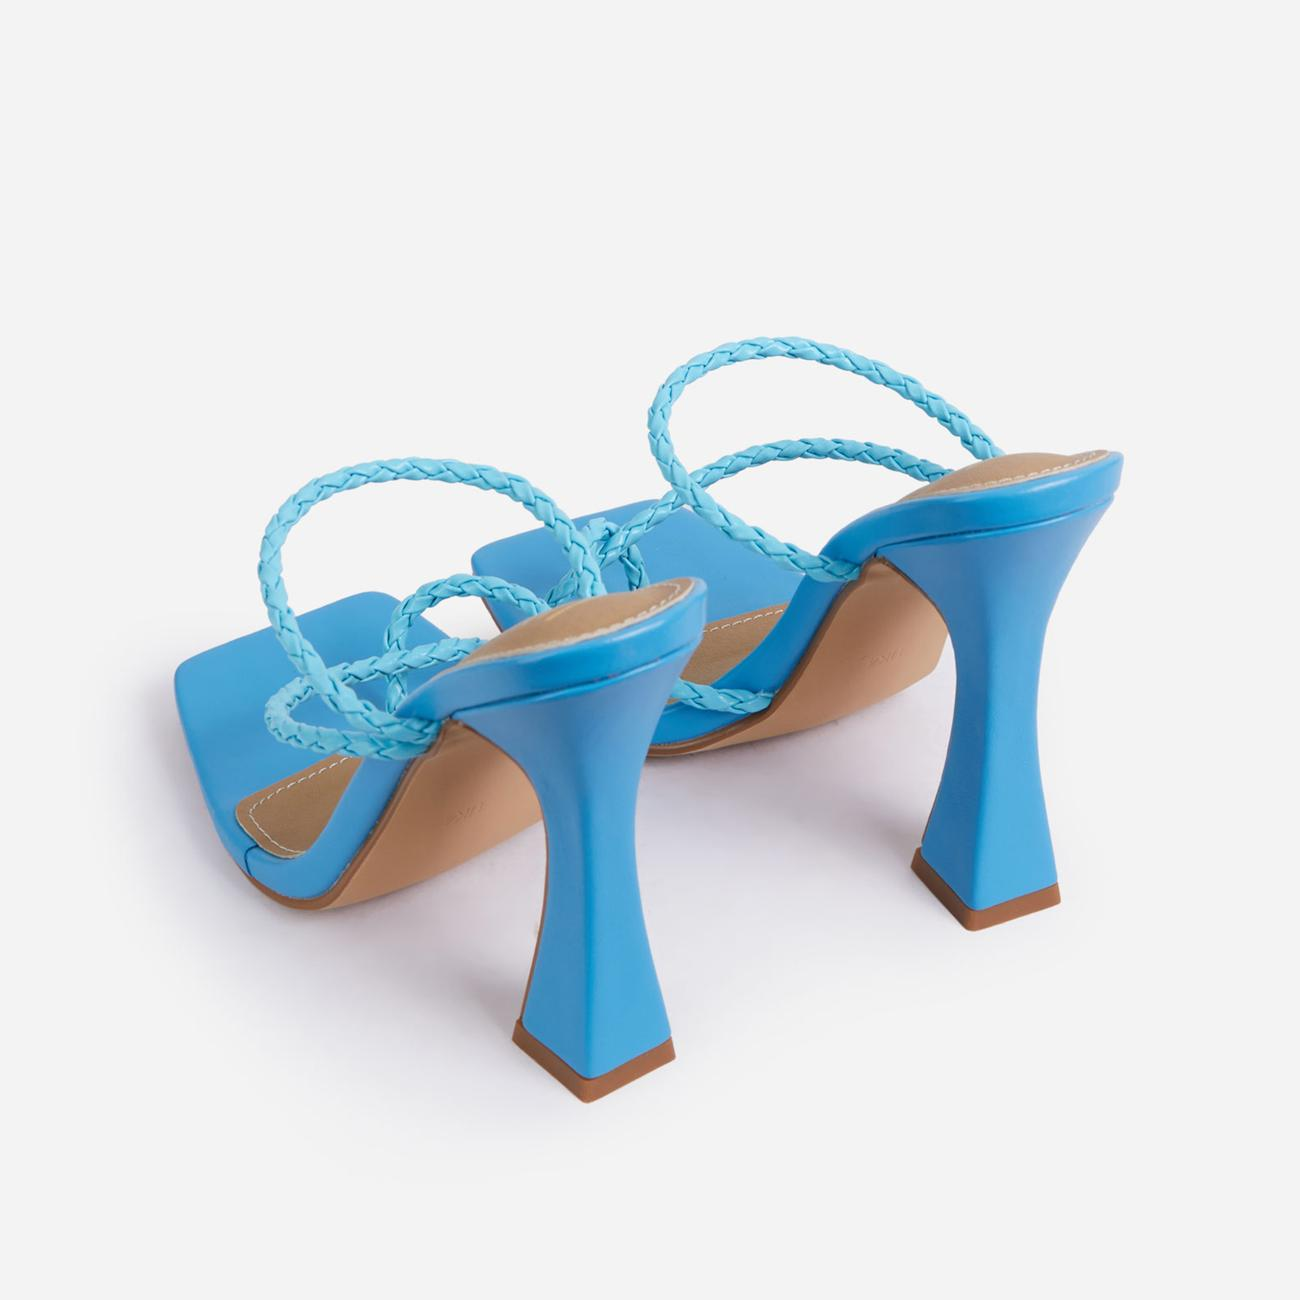 Tahiti Strappy Plait Detail Square Toe Heel Mule In Blue Faux Leather Image 3